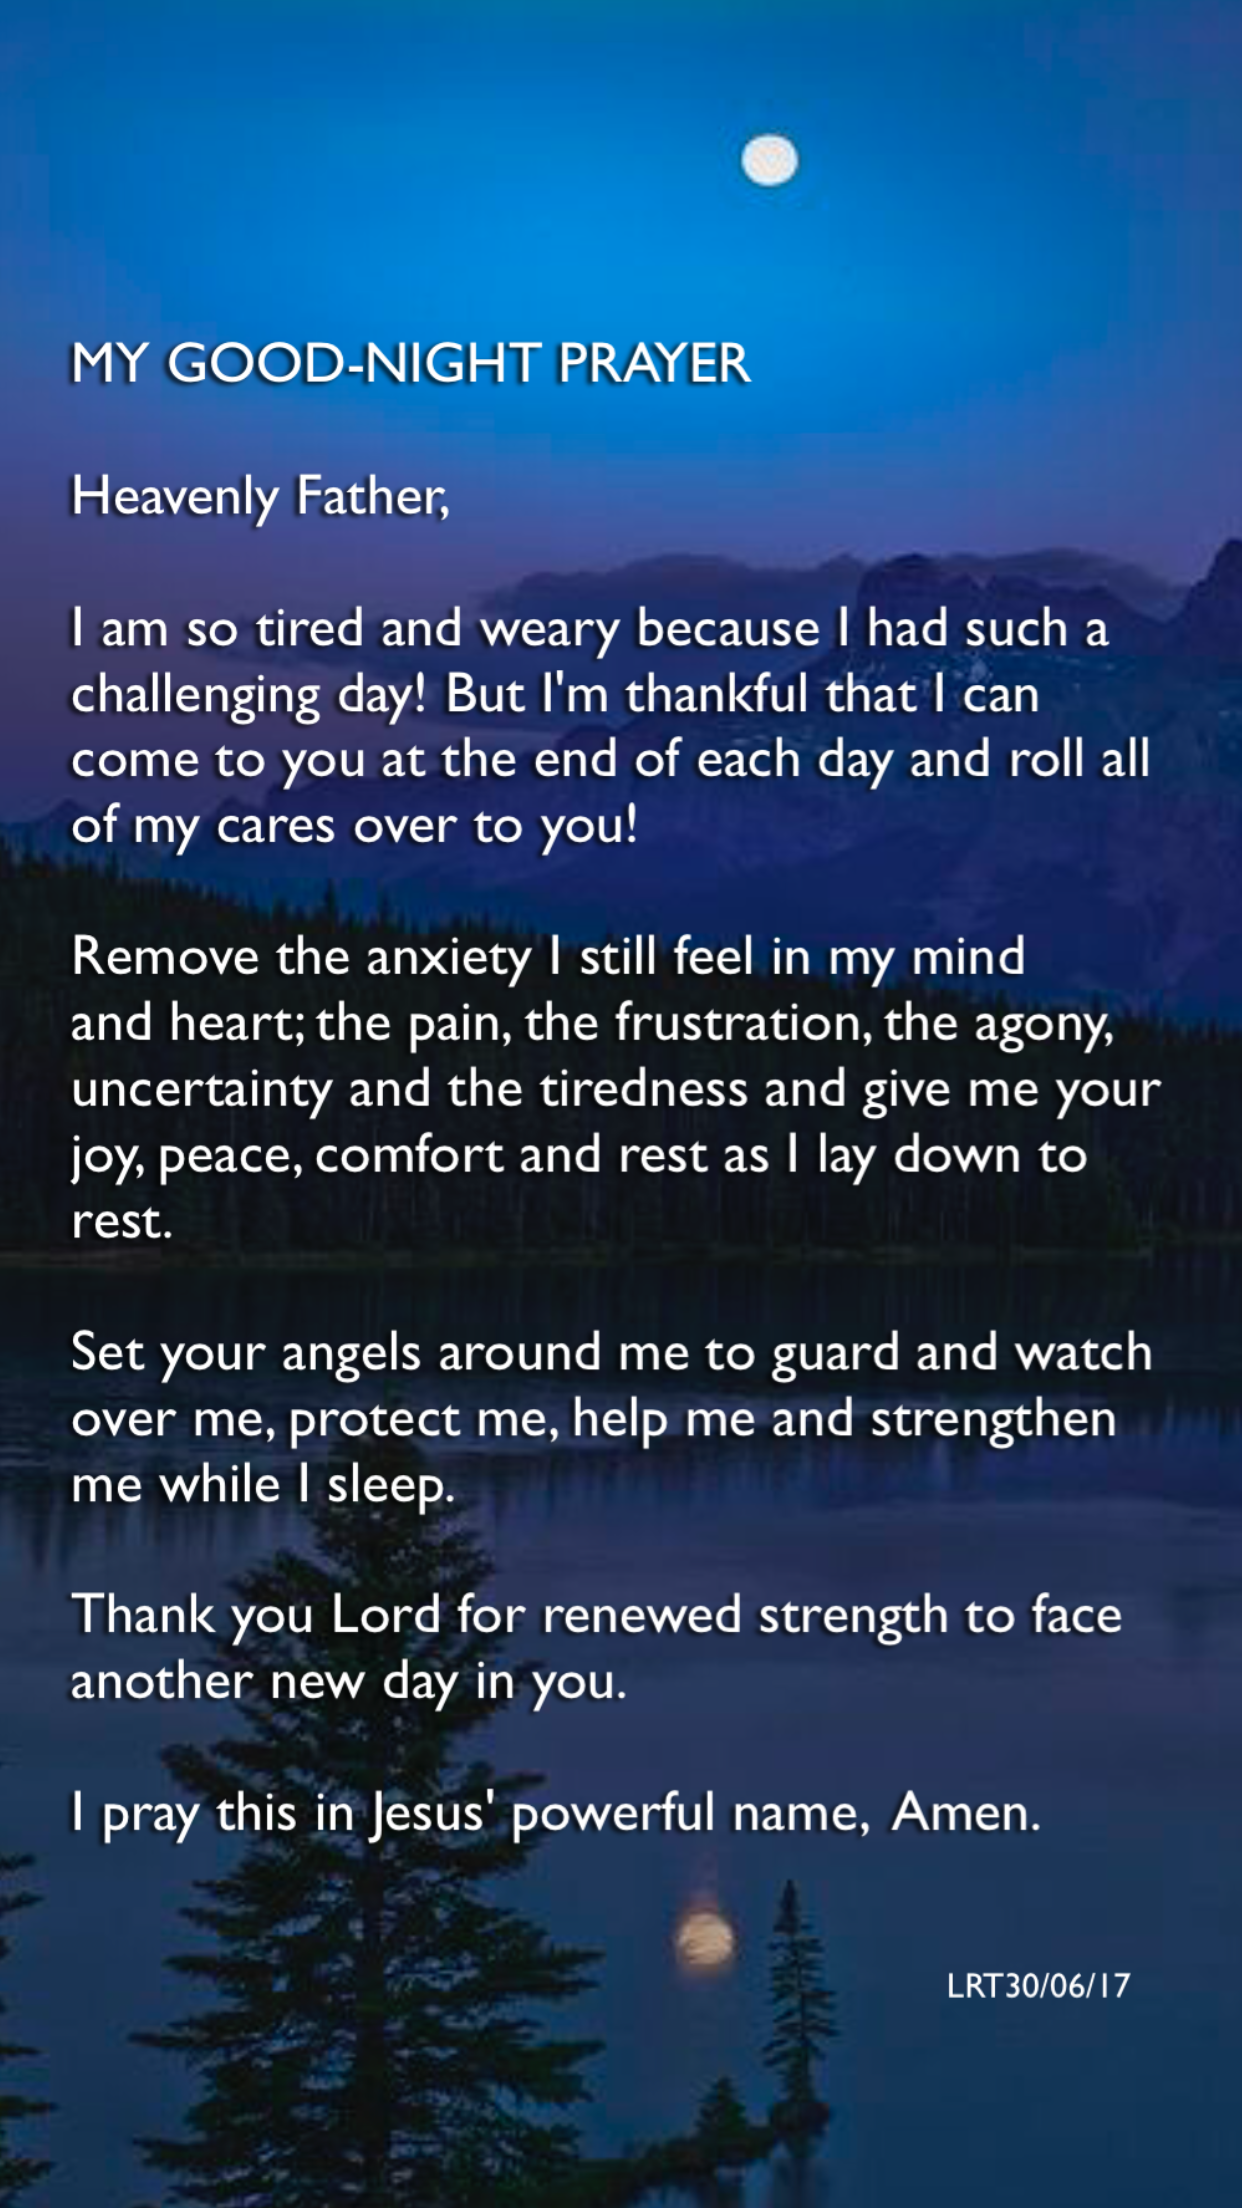 MY GOOD-NIGHT PRAYER Heavenly Father, I am so tired and weary because I had  such a challenging day! But I'm thankful that I can come to you at the end  of ...